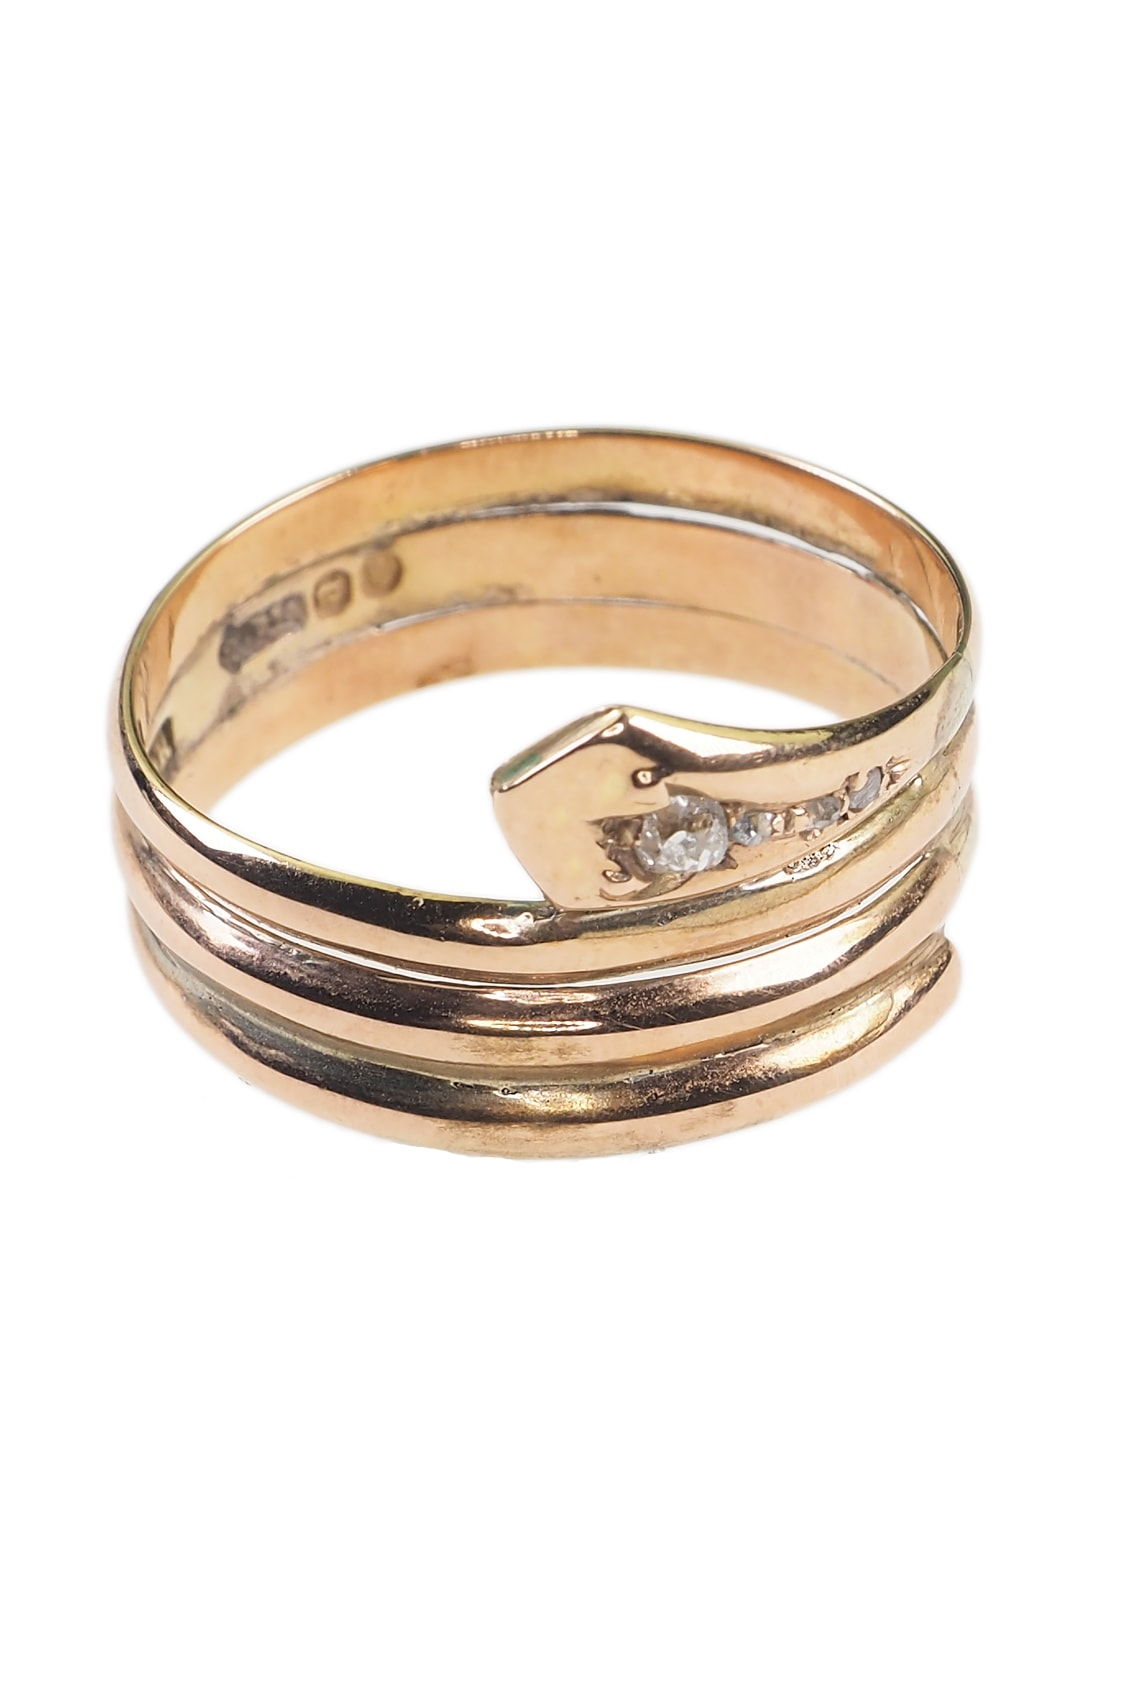 ring-0346a